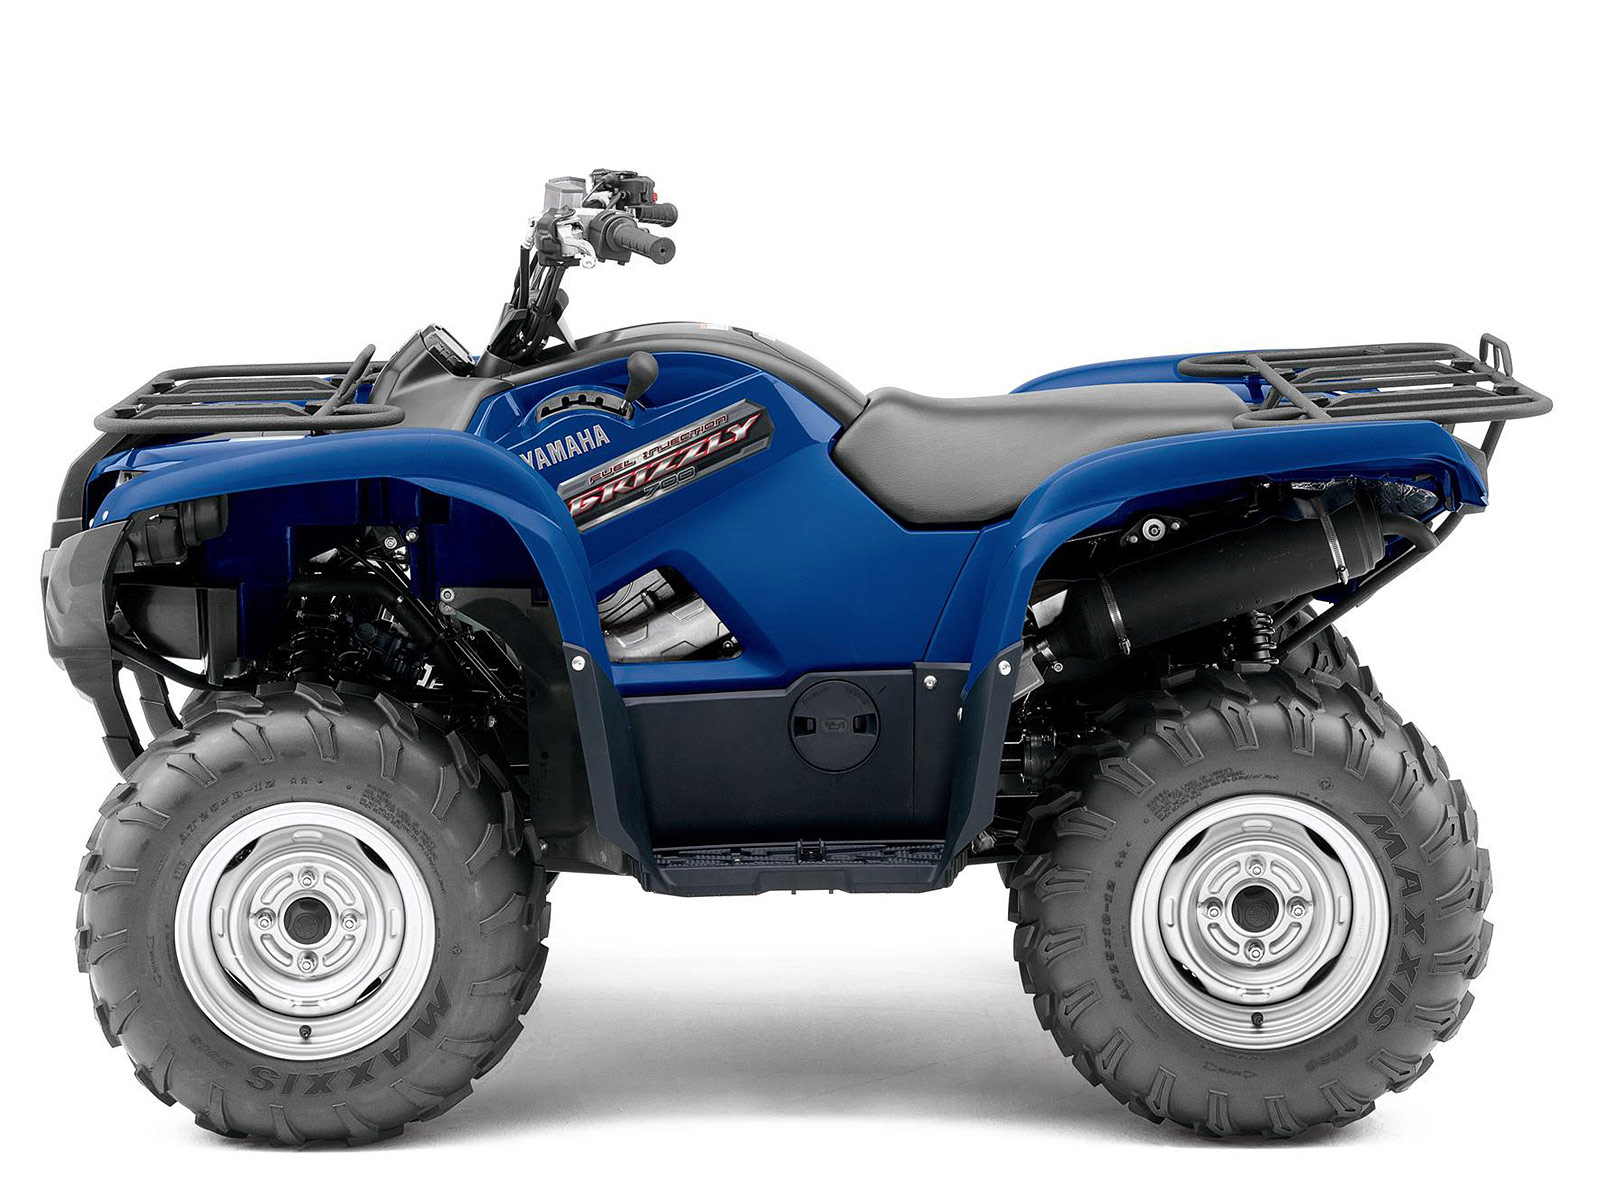 medium resolution of 2013 yamaha grizzly 700 fi auto 4x4 atv pictures 480x360 pixels